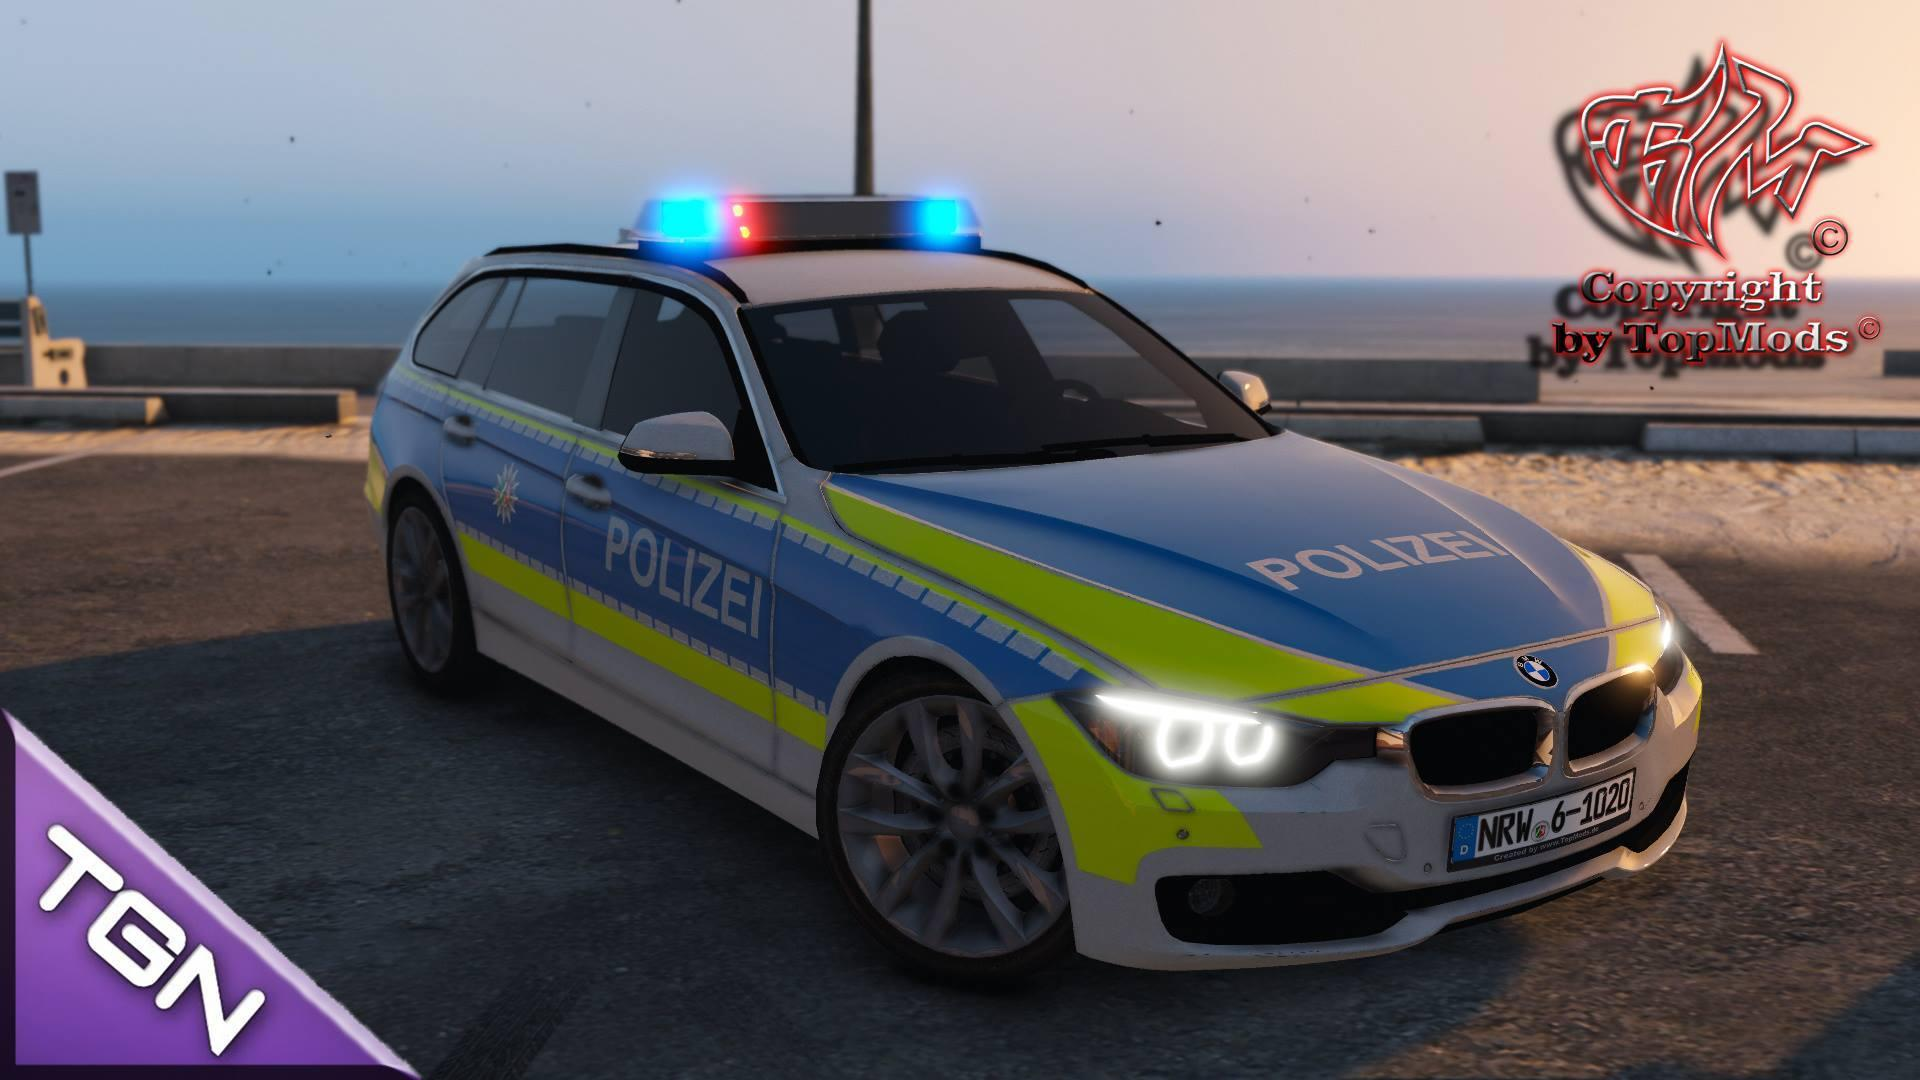 German Car Wallpaper Bmw F31 Polizei Nrw Gta5 Mods Com